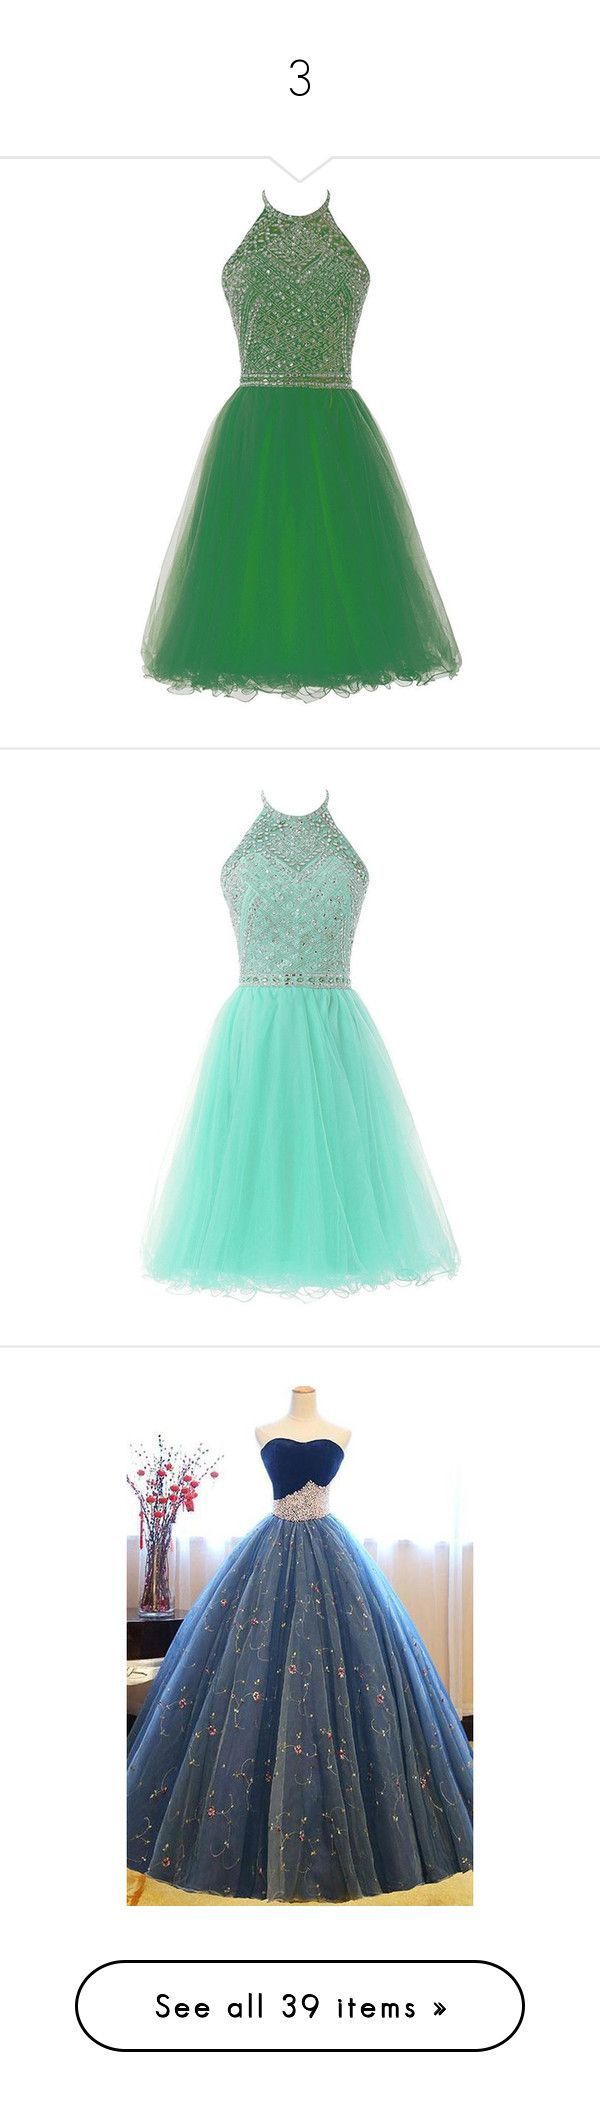 """""""3"""" by alinovarose ❤ liked on Polyvore featuring dresses, gowns, green dress, halter top prom dress, prom ball gowns, homecoming dresses, short prom dresses, short dresses, halter prom dresses and green homecoming dress"""